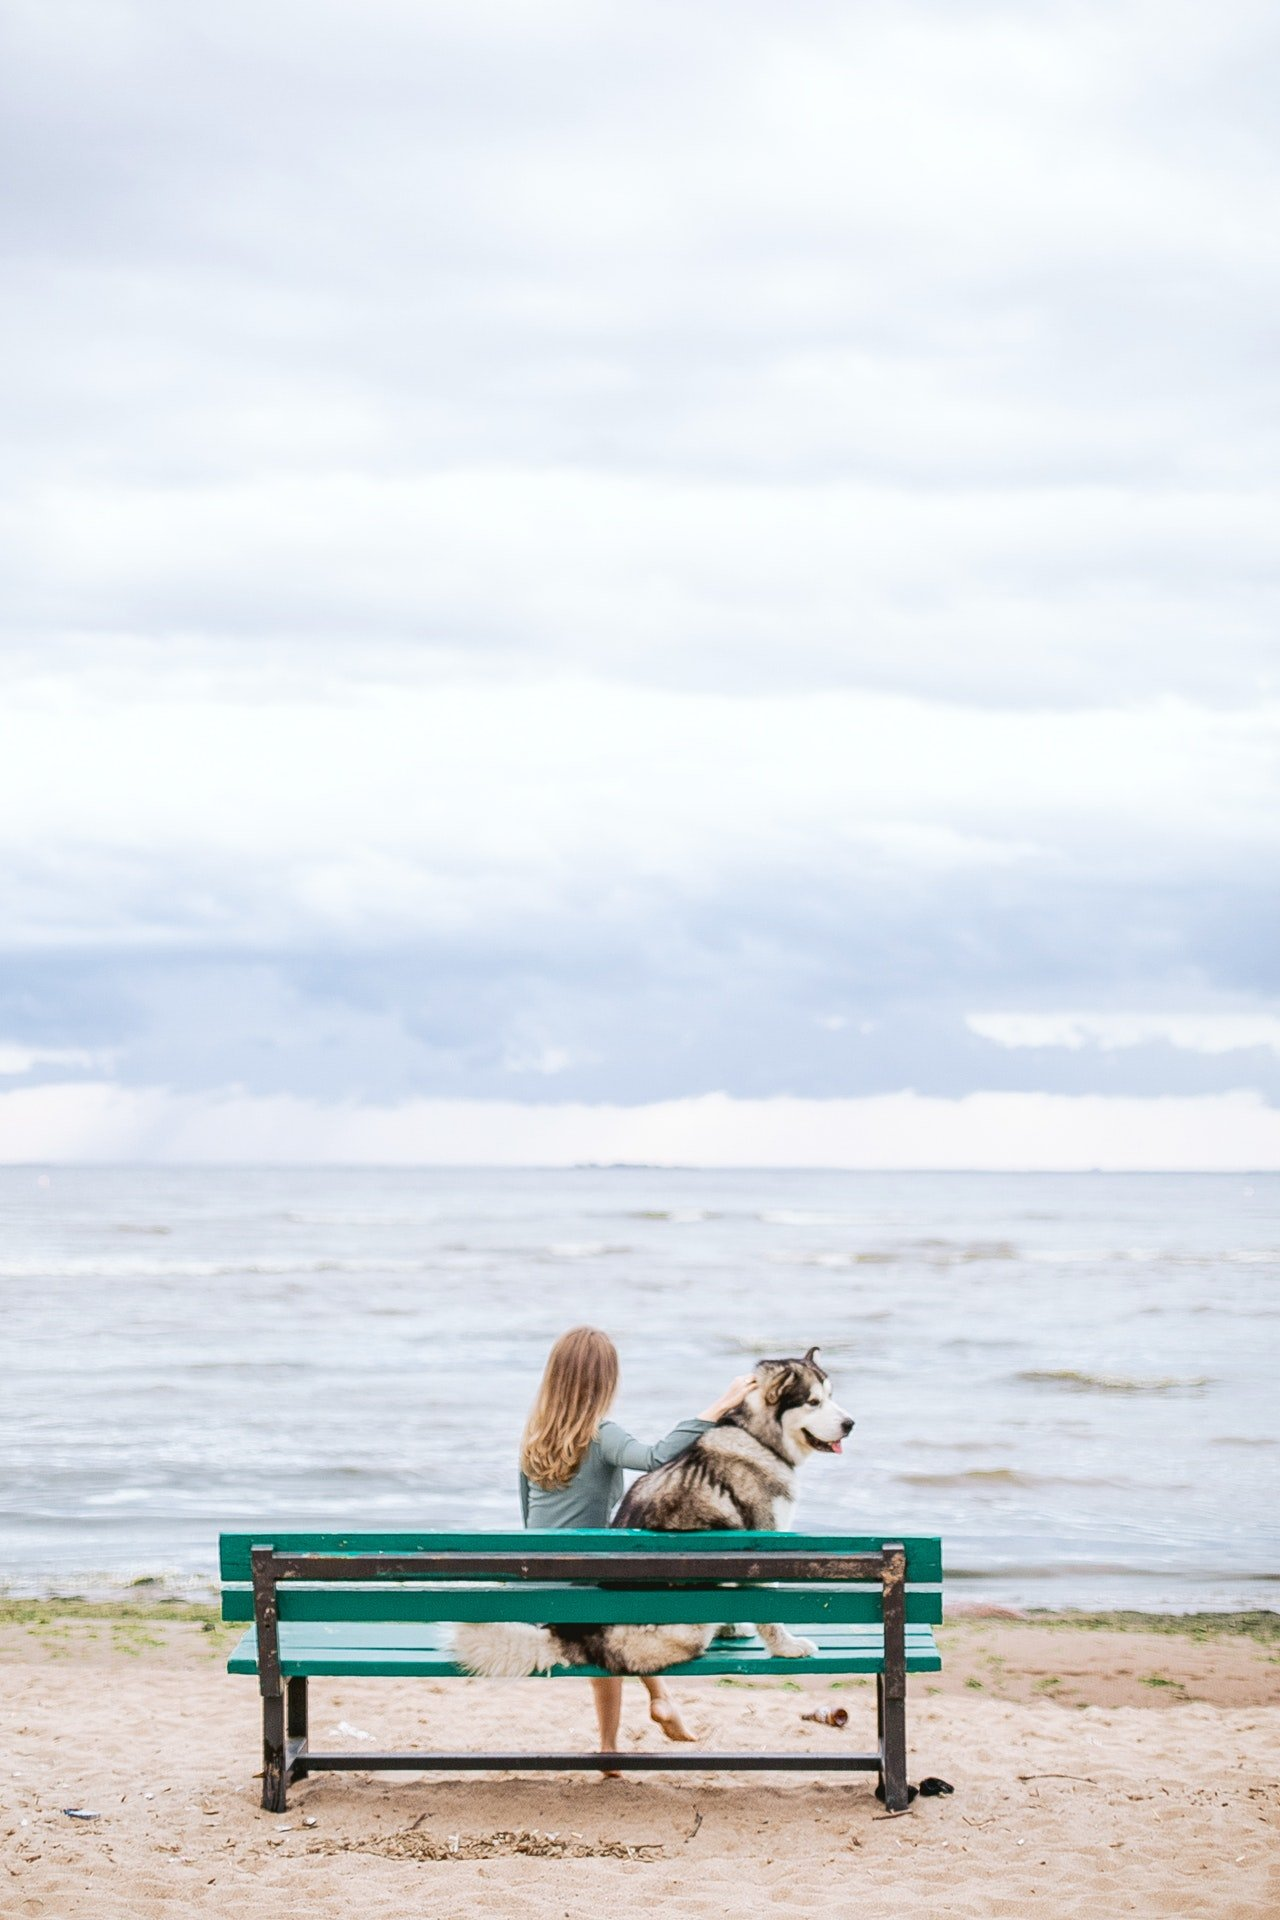 Woman sitting on a bench with her dog| Photo: La Miko from Pexels